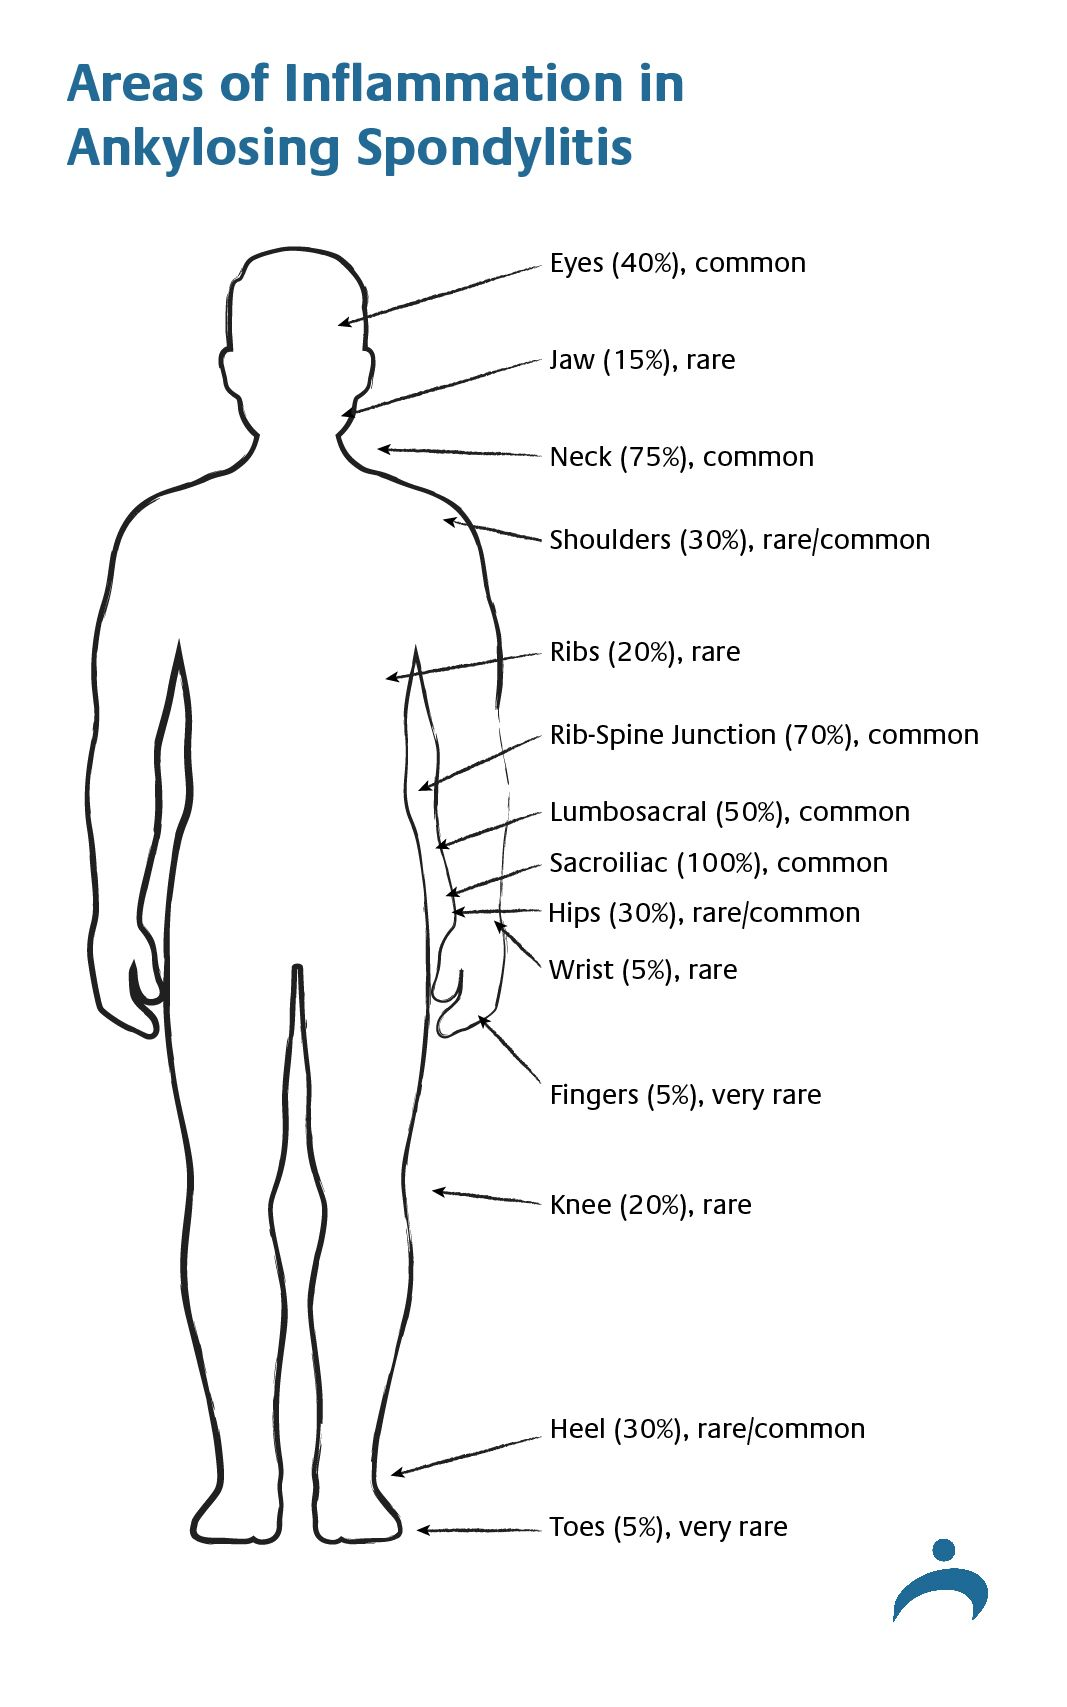 small resolution of areas of inflammation in ankylosing spondylitis diagram